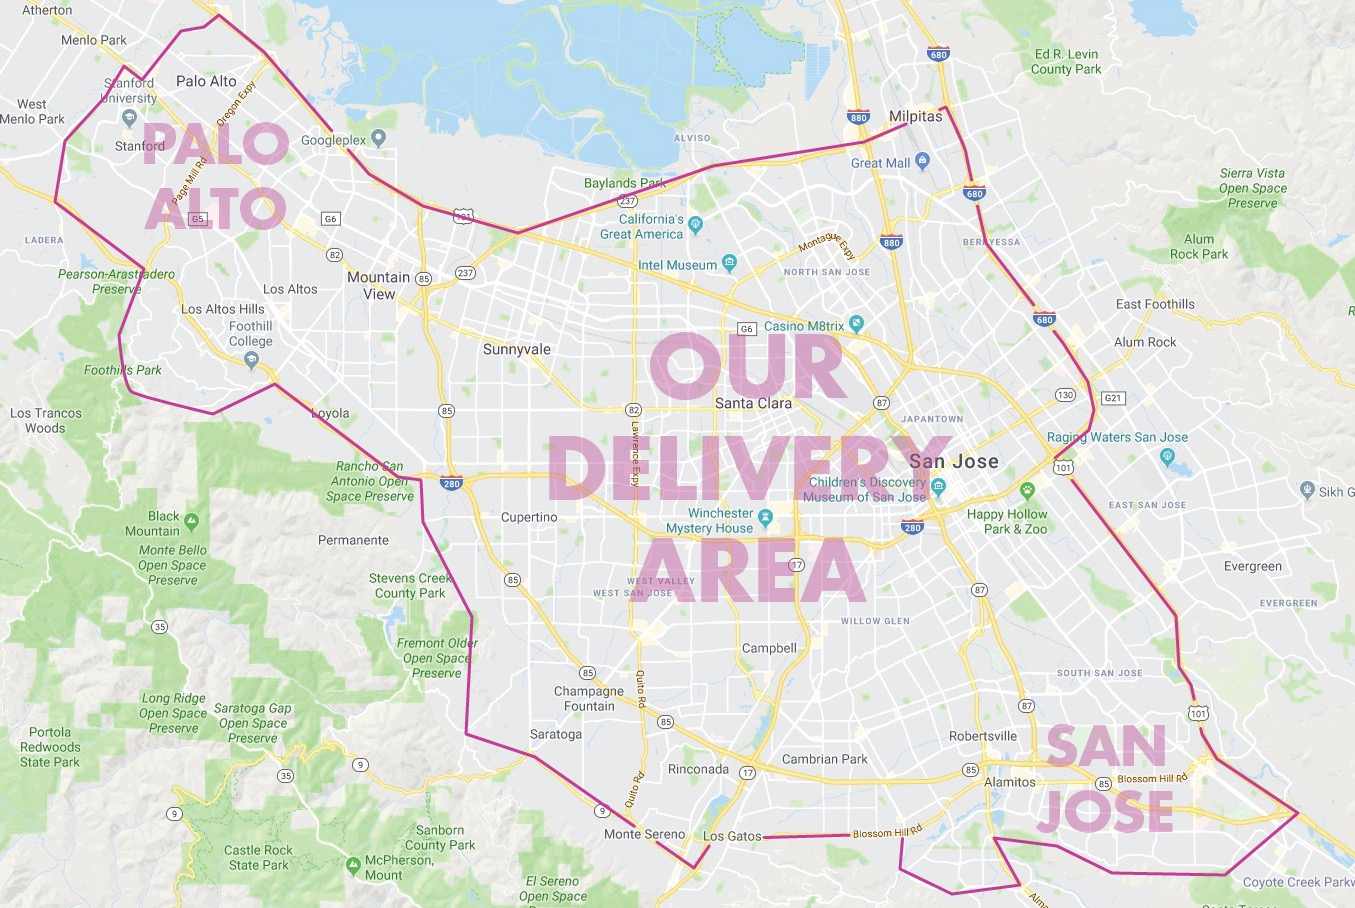 OUR DELIVERY AREA